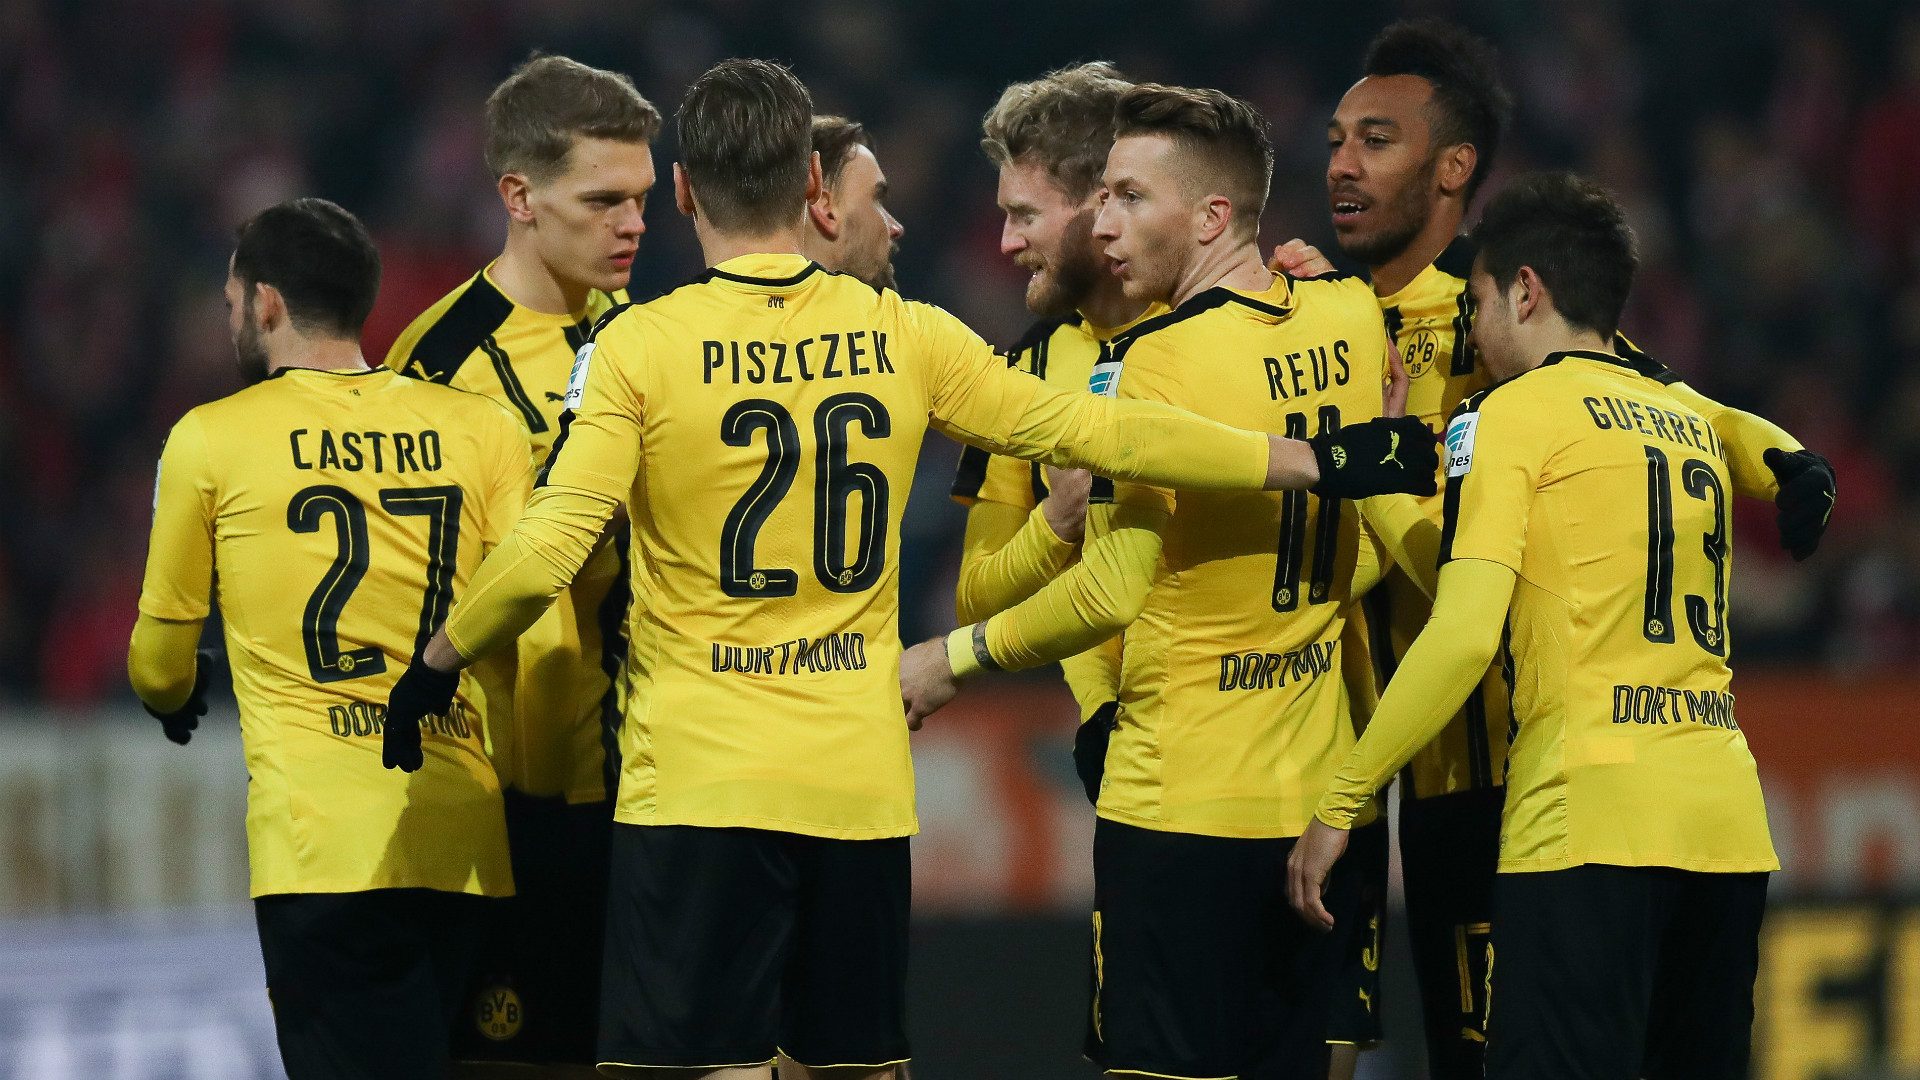 UCL Draw: Dortmund Coach Claims Madrid Currently World's Best Team